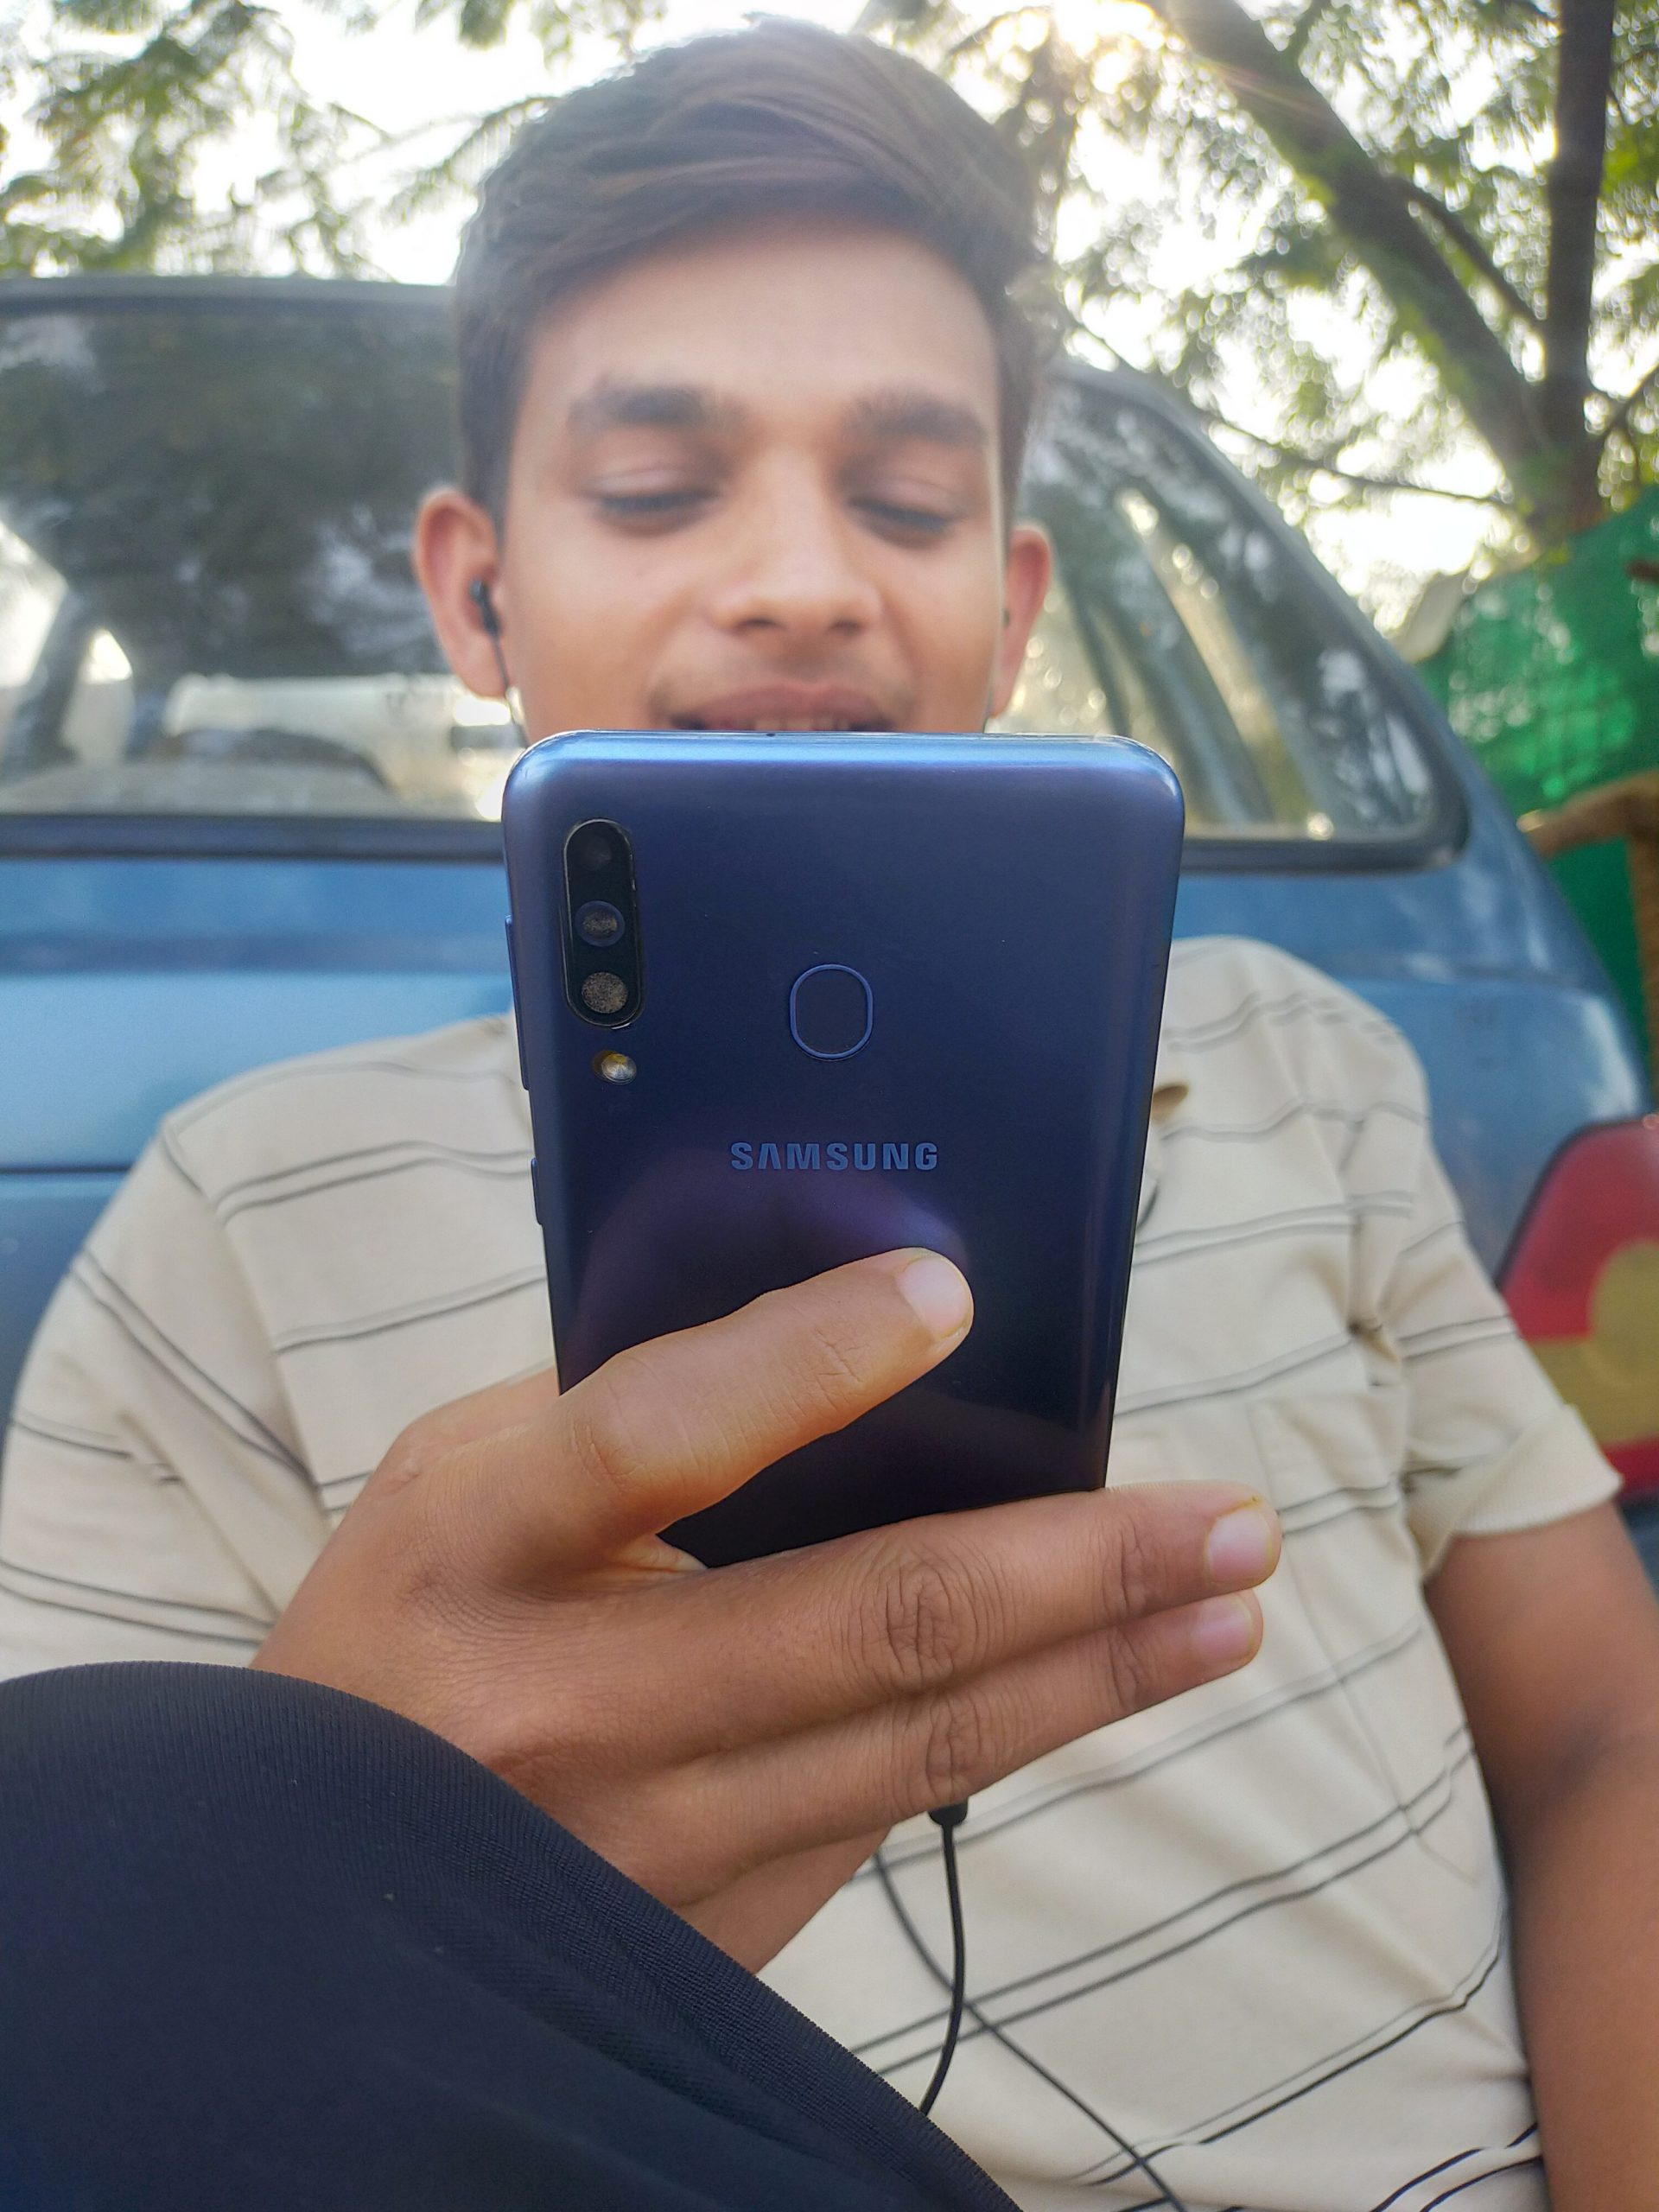 A boy using mobile phone